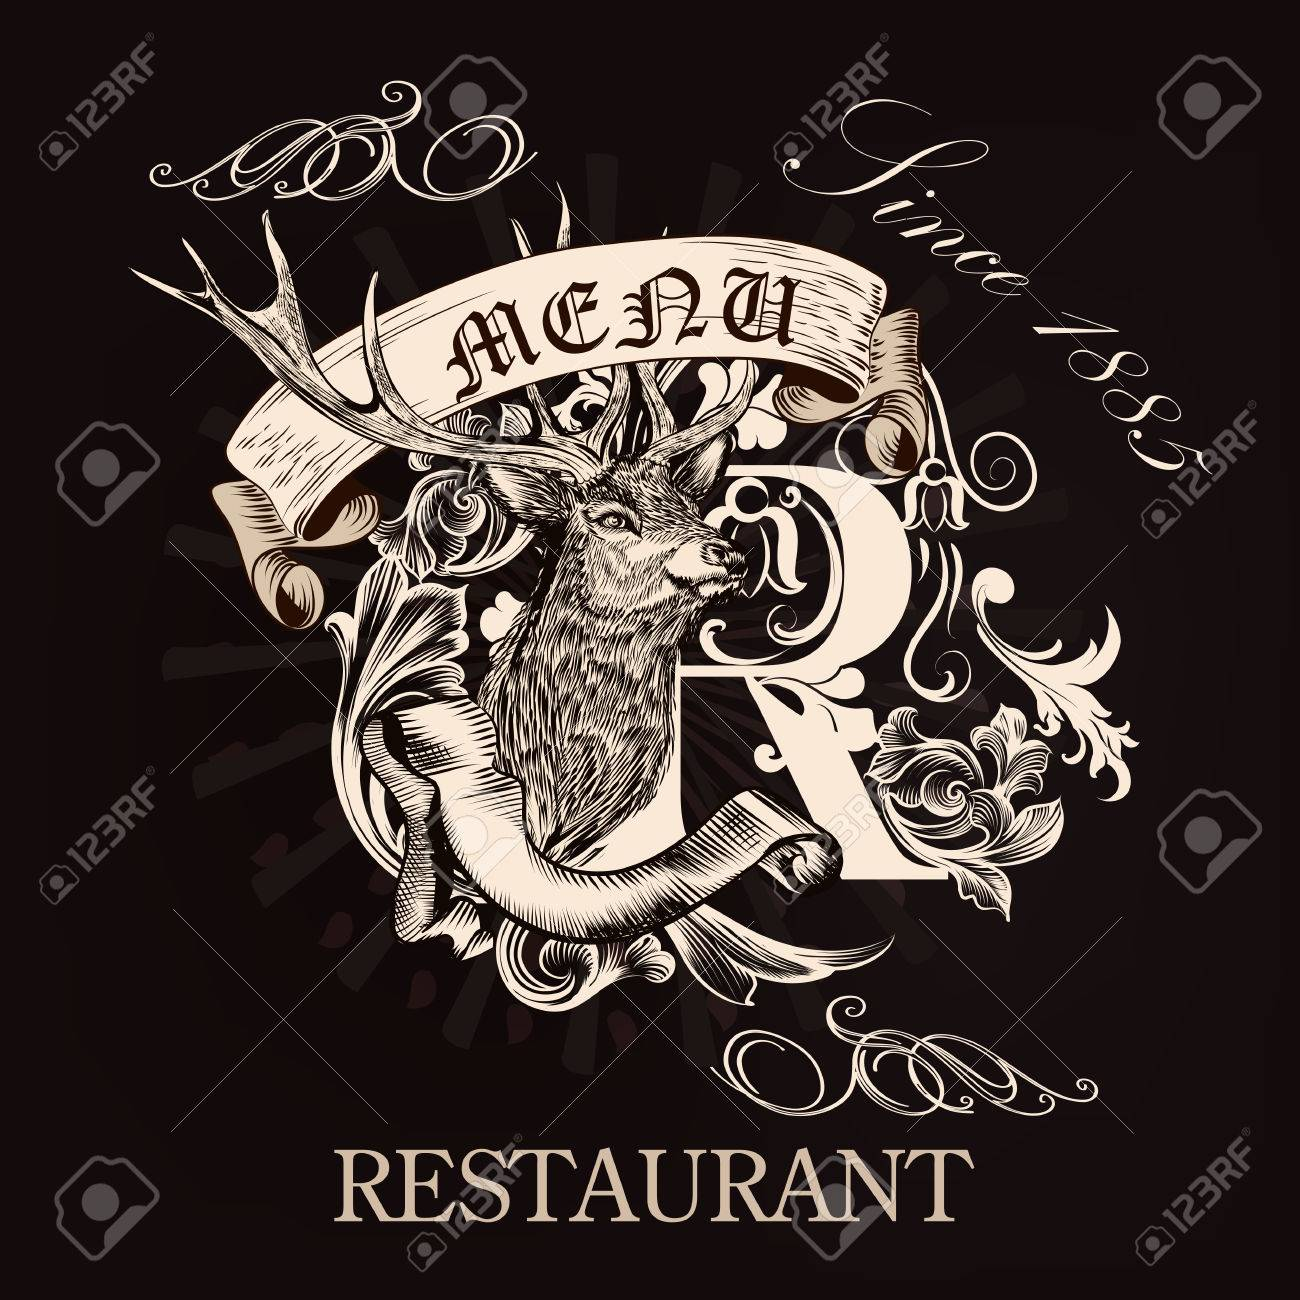 elegant menu design for restaurant in royal style with hand drawn